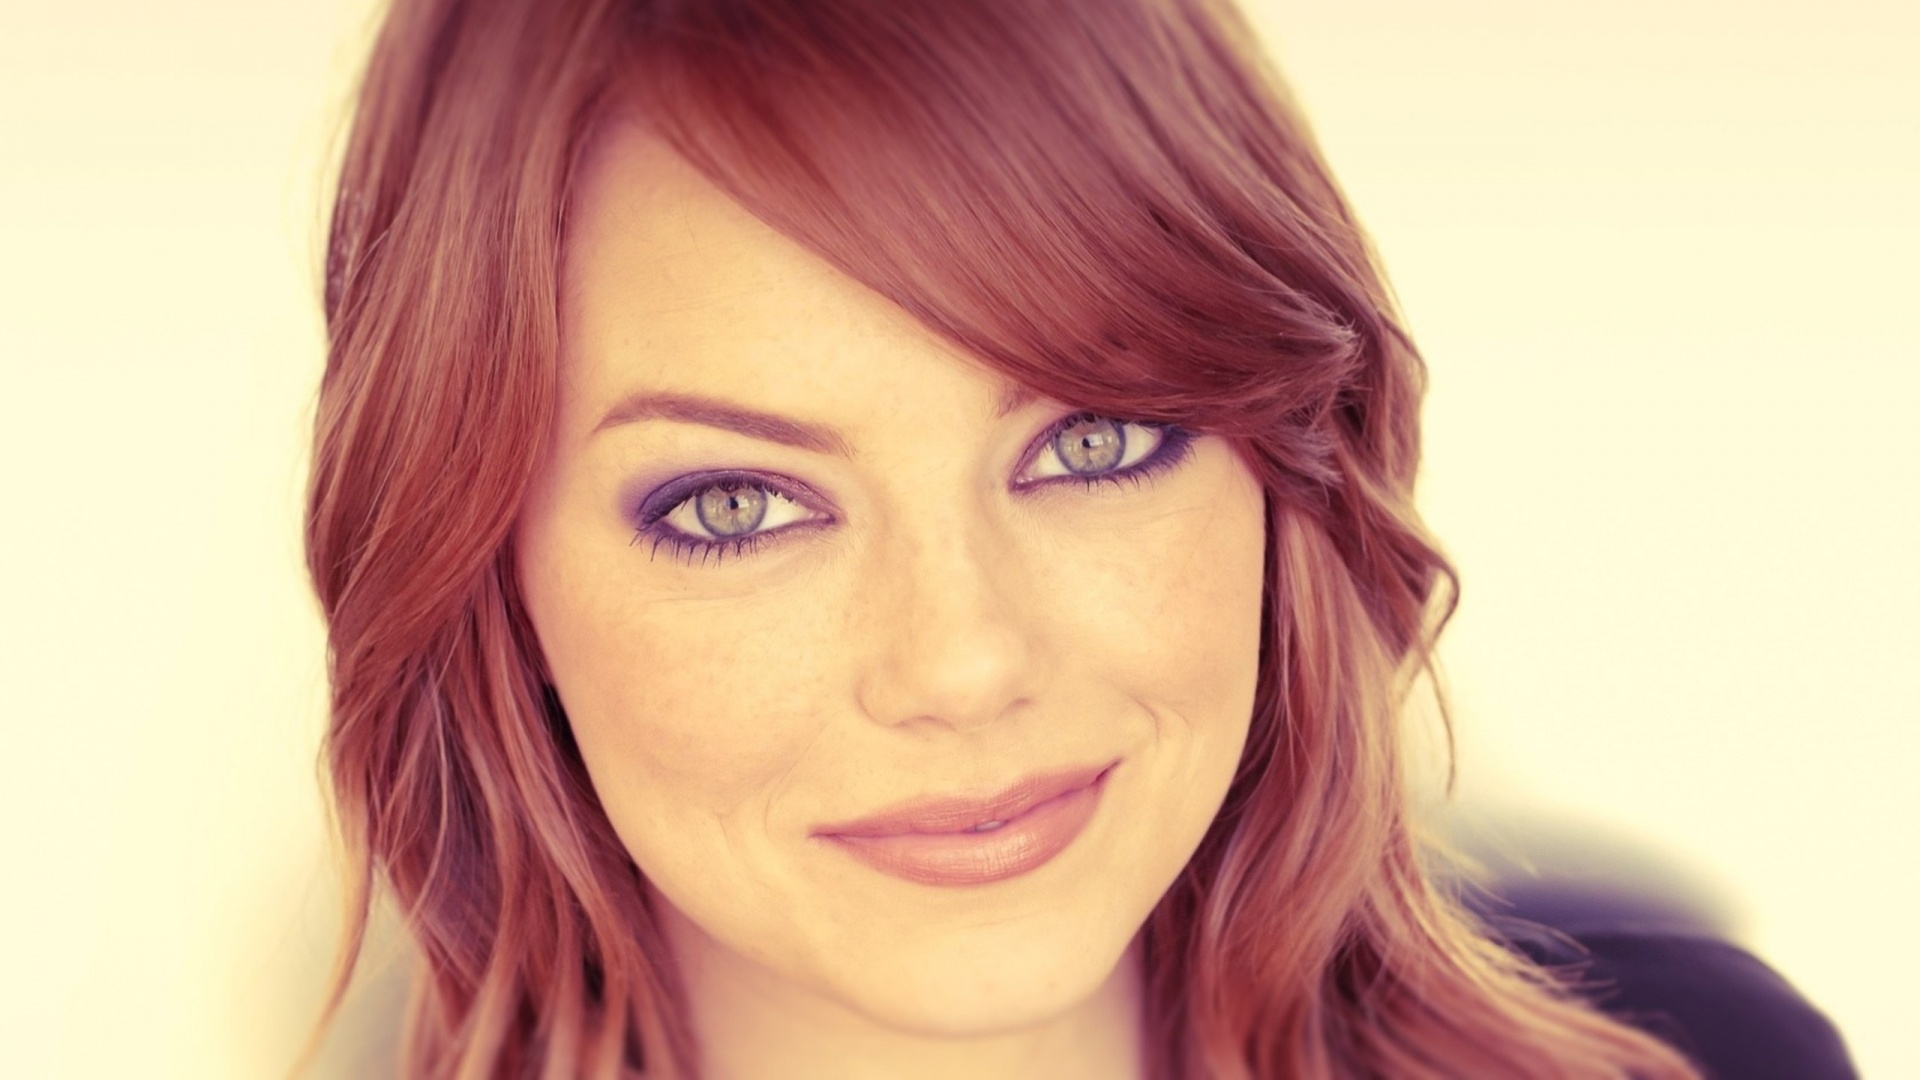 Beautiful Emma Stone Amazing Smile Face And Eye Look Desktop Free Background Pictures Hd Mobile